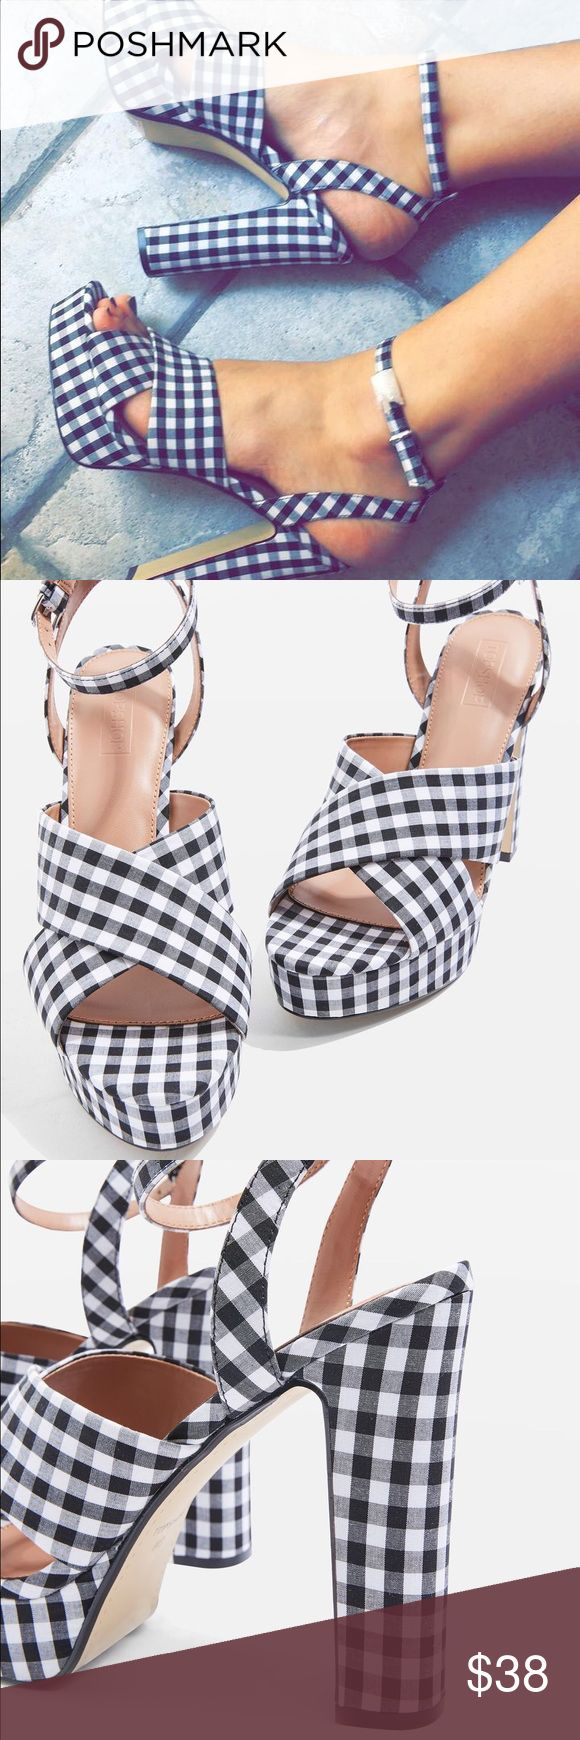 NWOT TopShop Madrid Gingham Platform Heels NEW without tags! In excellent condition. Never worn. Super on trend with the gingham right now! Comfortable and true to size 🖤 Currently retail for $52. Topshop Shoes Platforms